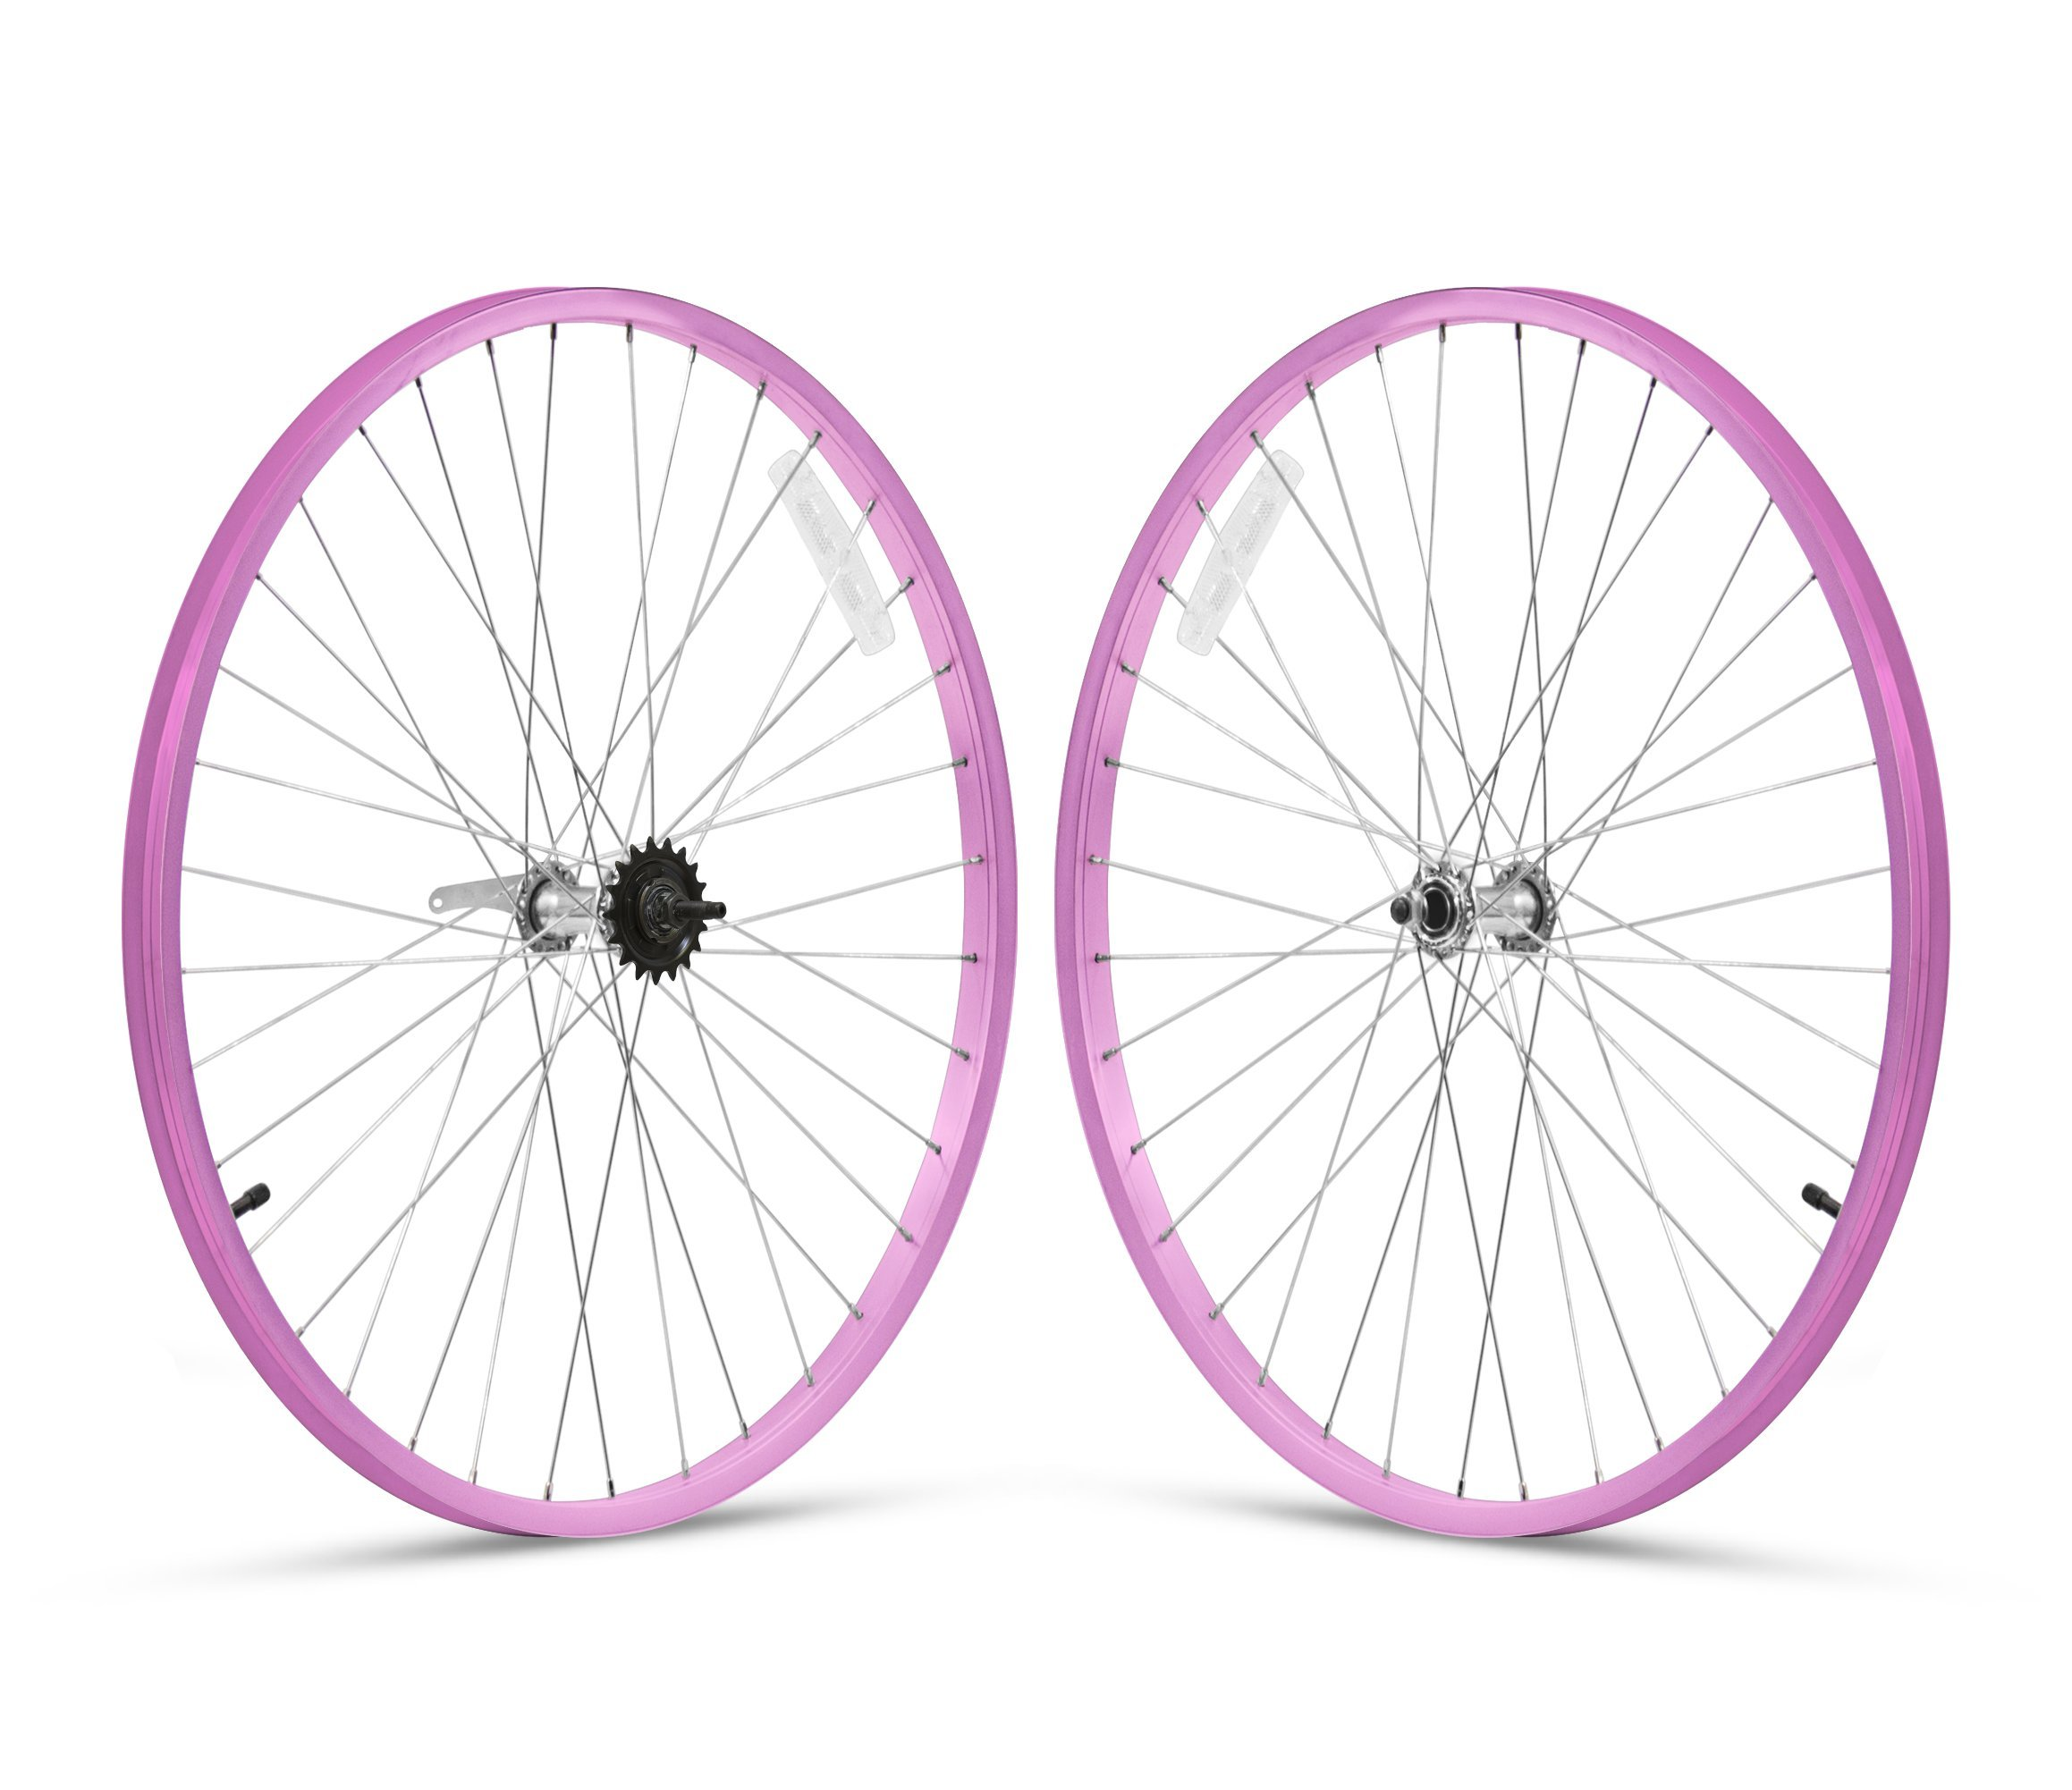 Firmstrong 3-Speed Beach Cruiser Bicycle Wheelset, Front/Rear, Pink, 26'' by Firmstrong